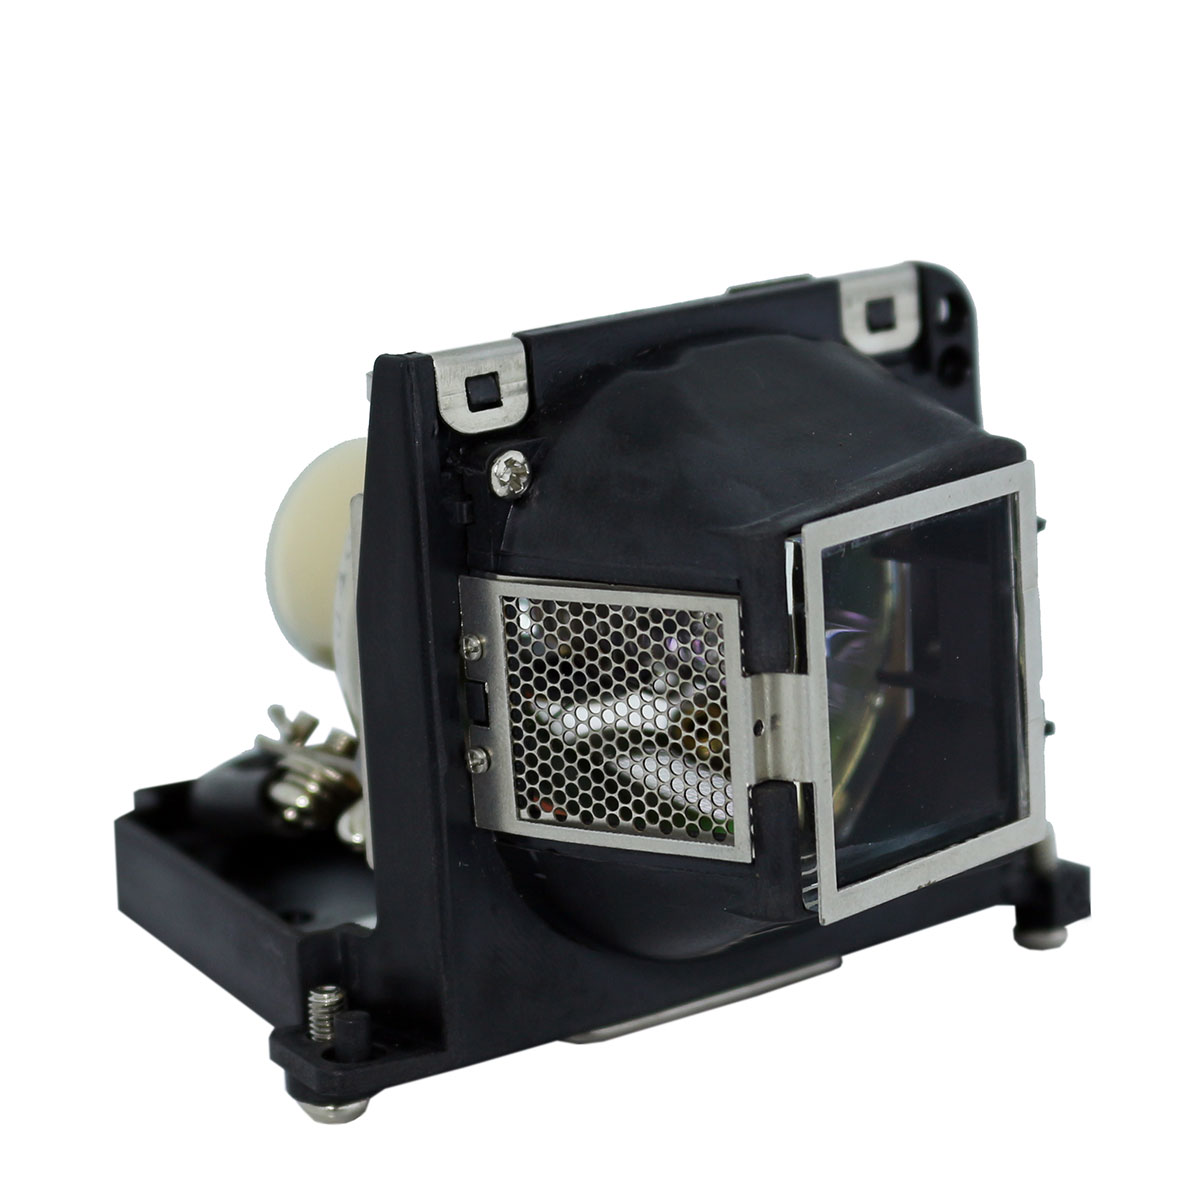 Original Philips Projector Lamp Replacement for Premier HE-S480 (Bulb Only) - image 1 de 5